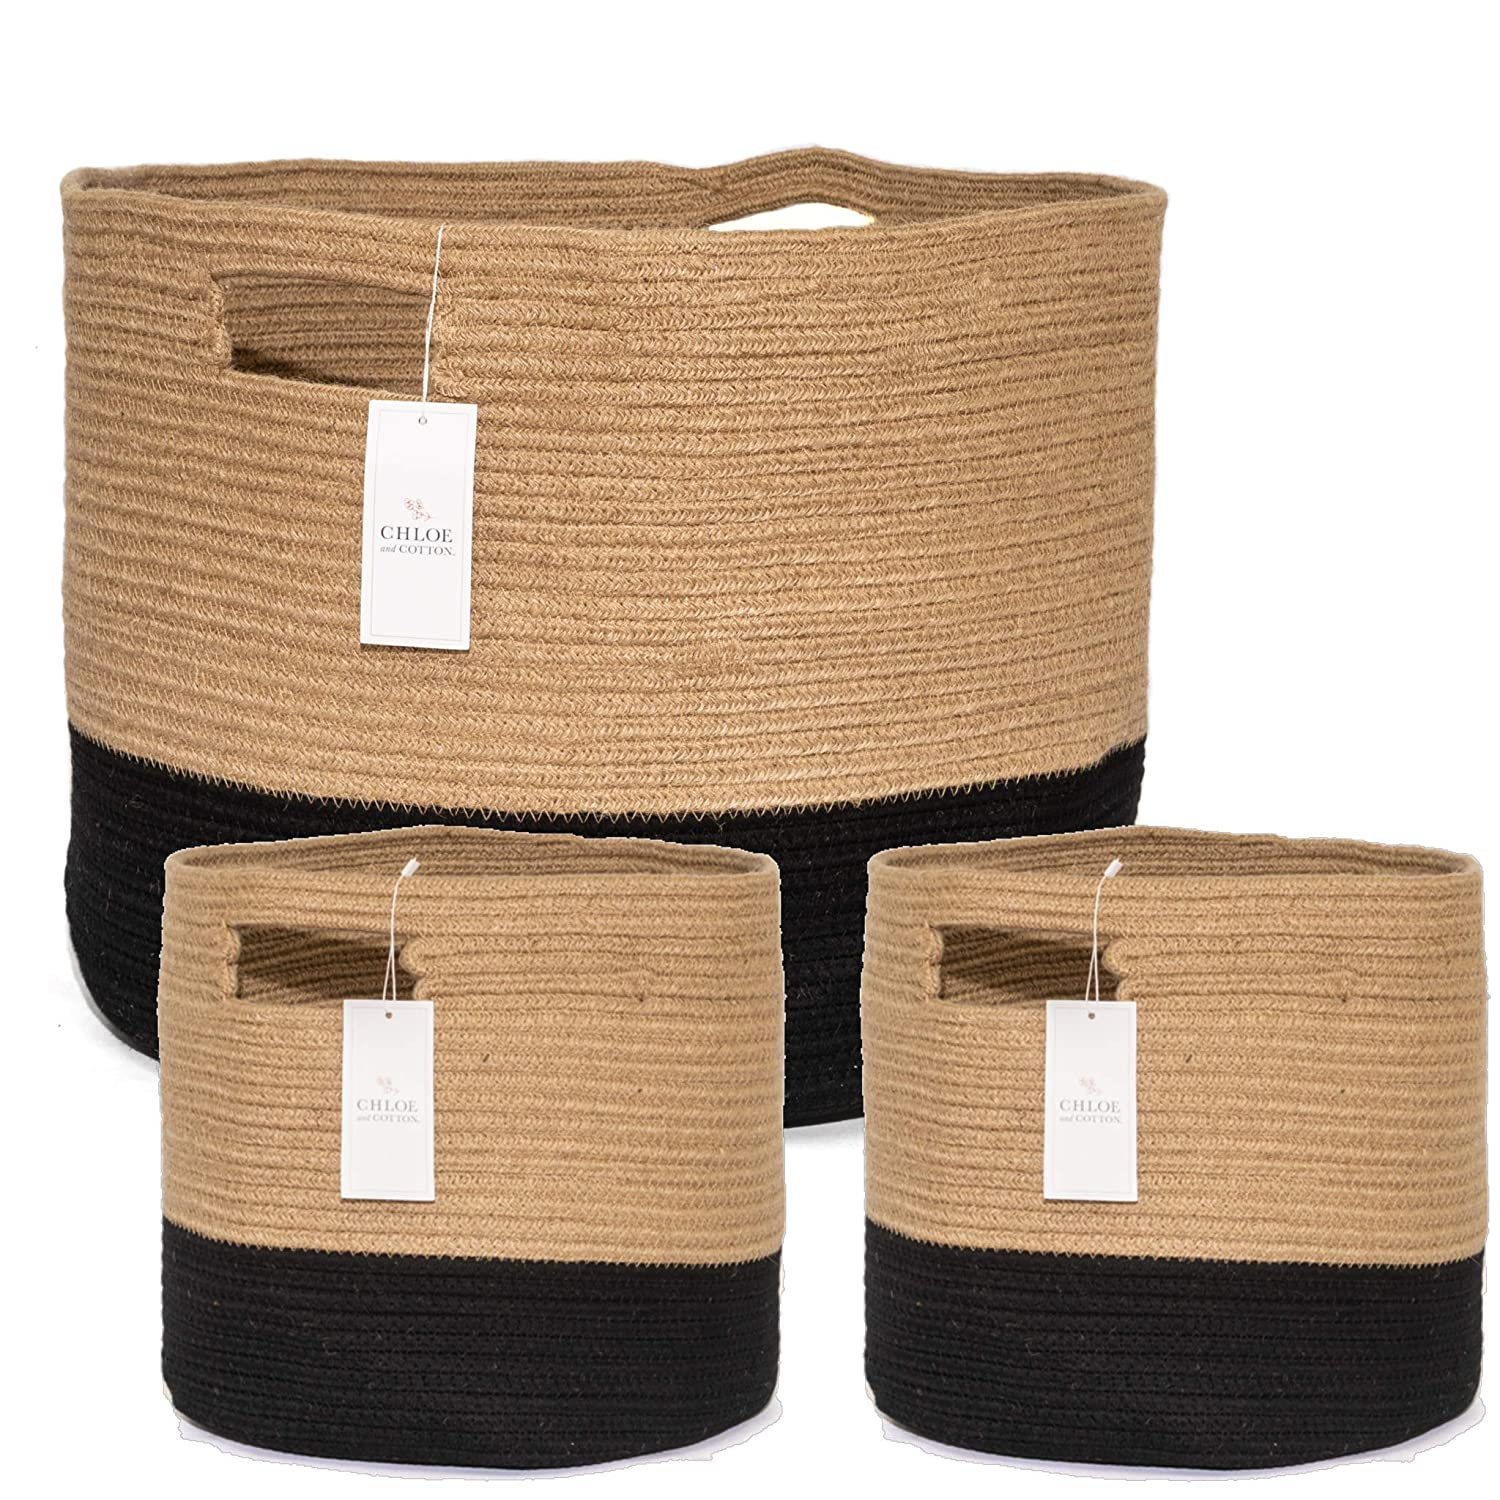 Chloe and Cotton Woven Coiled Rope Storage Baskets XXXL 15 x 21 inch and Set of 2 Cubby Baskets Jute Black Handles | Decorative Laundry Clothes Hamper, Blanket, Towel, Baby Nursery Bin Cute Organizer